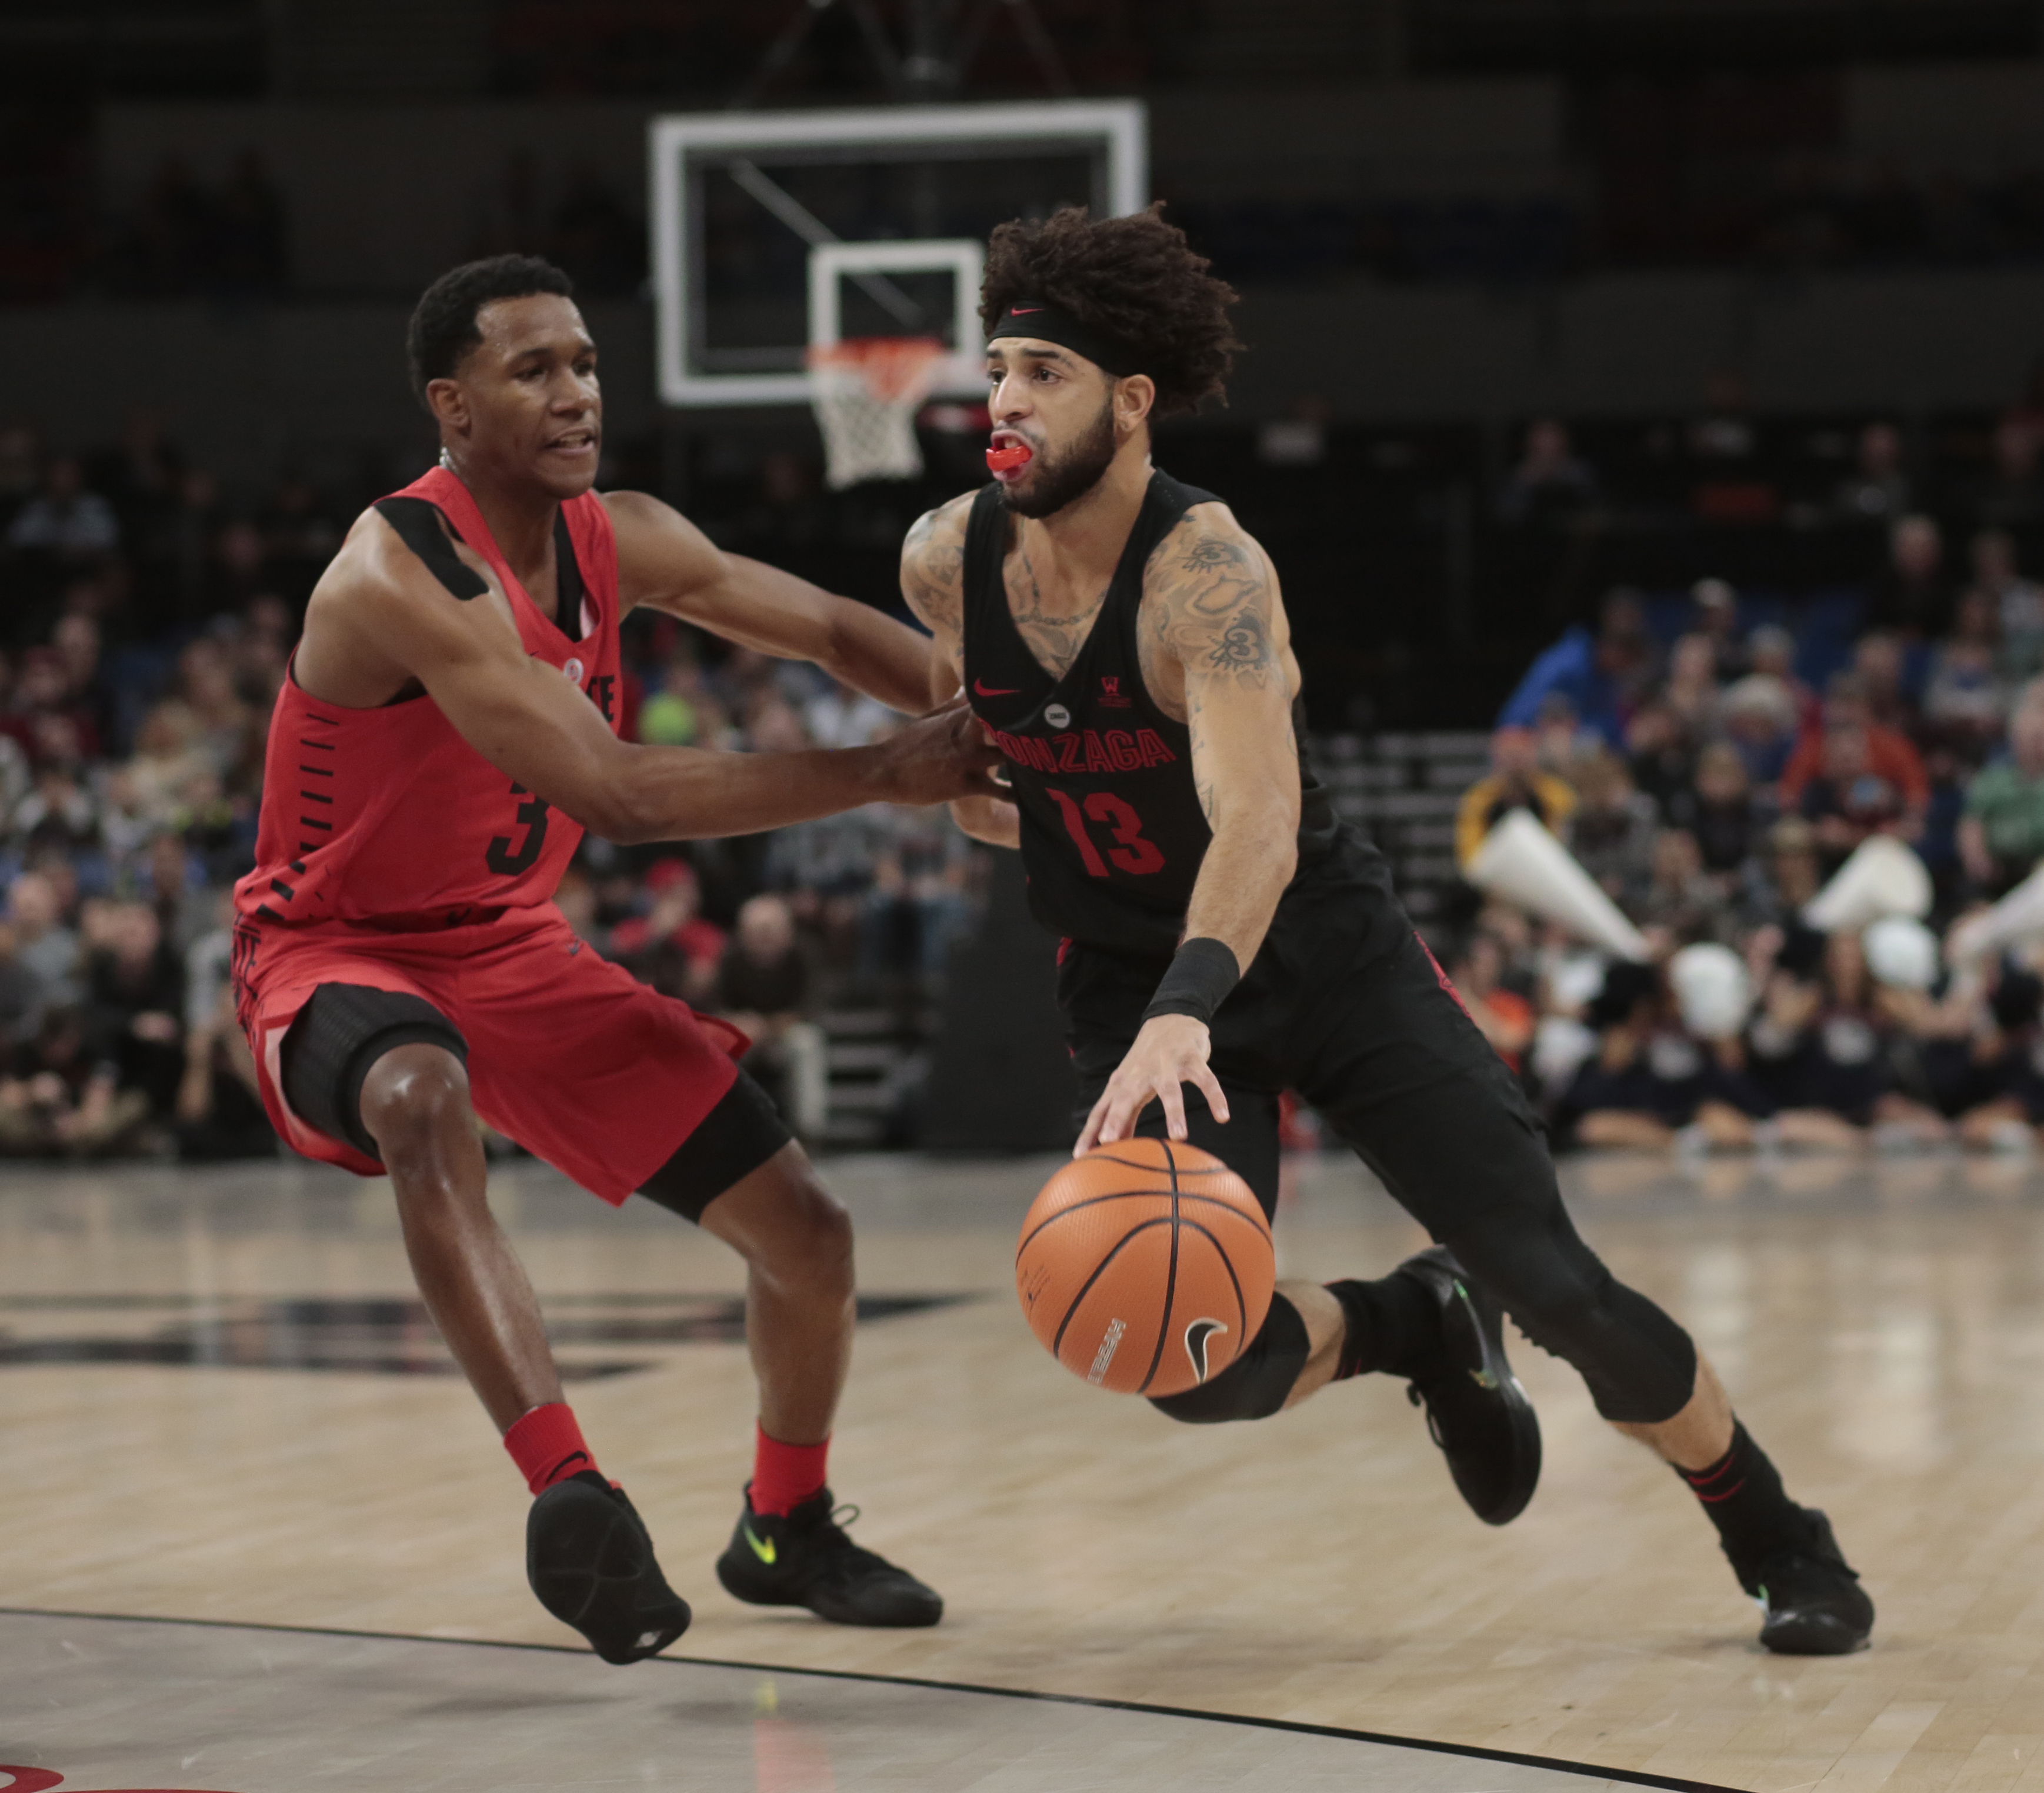 Ohio State´s C.J. Jackson (3) guards Gonzaga´s Josh Perkins (13) in the first half of an NCAA college basketball game during the Phil Knight Invitational tournament in Portland, Ore., Thursday, Nov. 23, 2017. (AP Photo/Timothy J. Gonzalez)